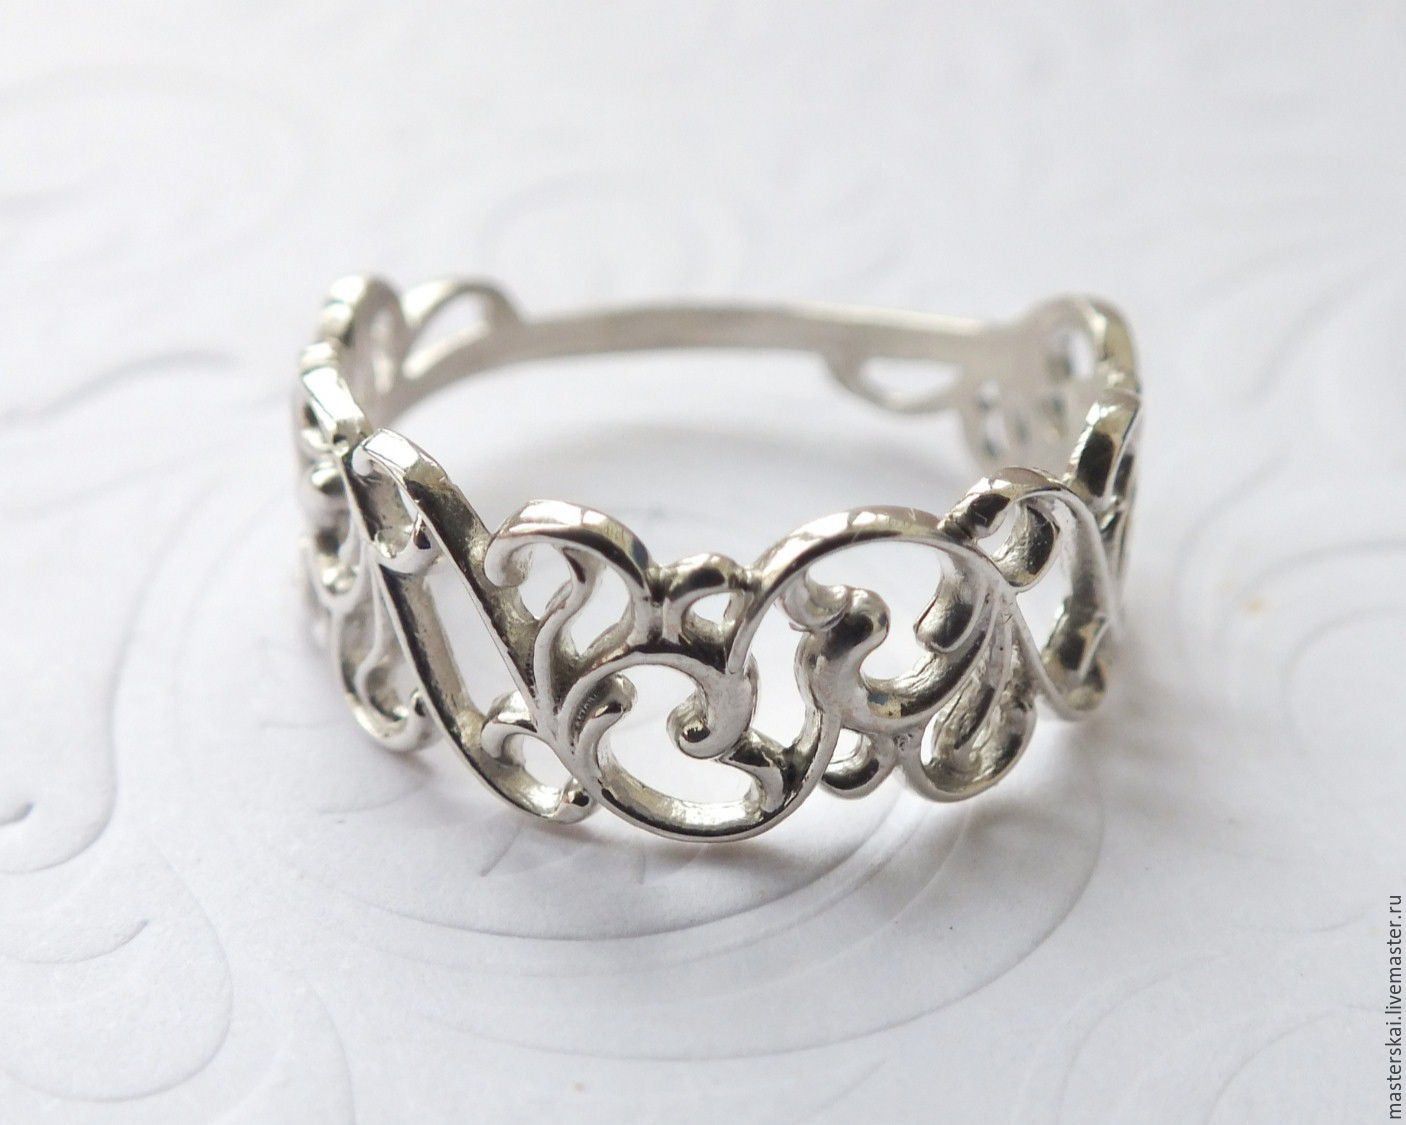 Ring 'Pattern III' - silver 925, Rings, Moscow,  Фото №1